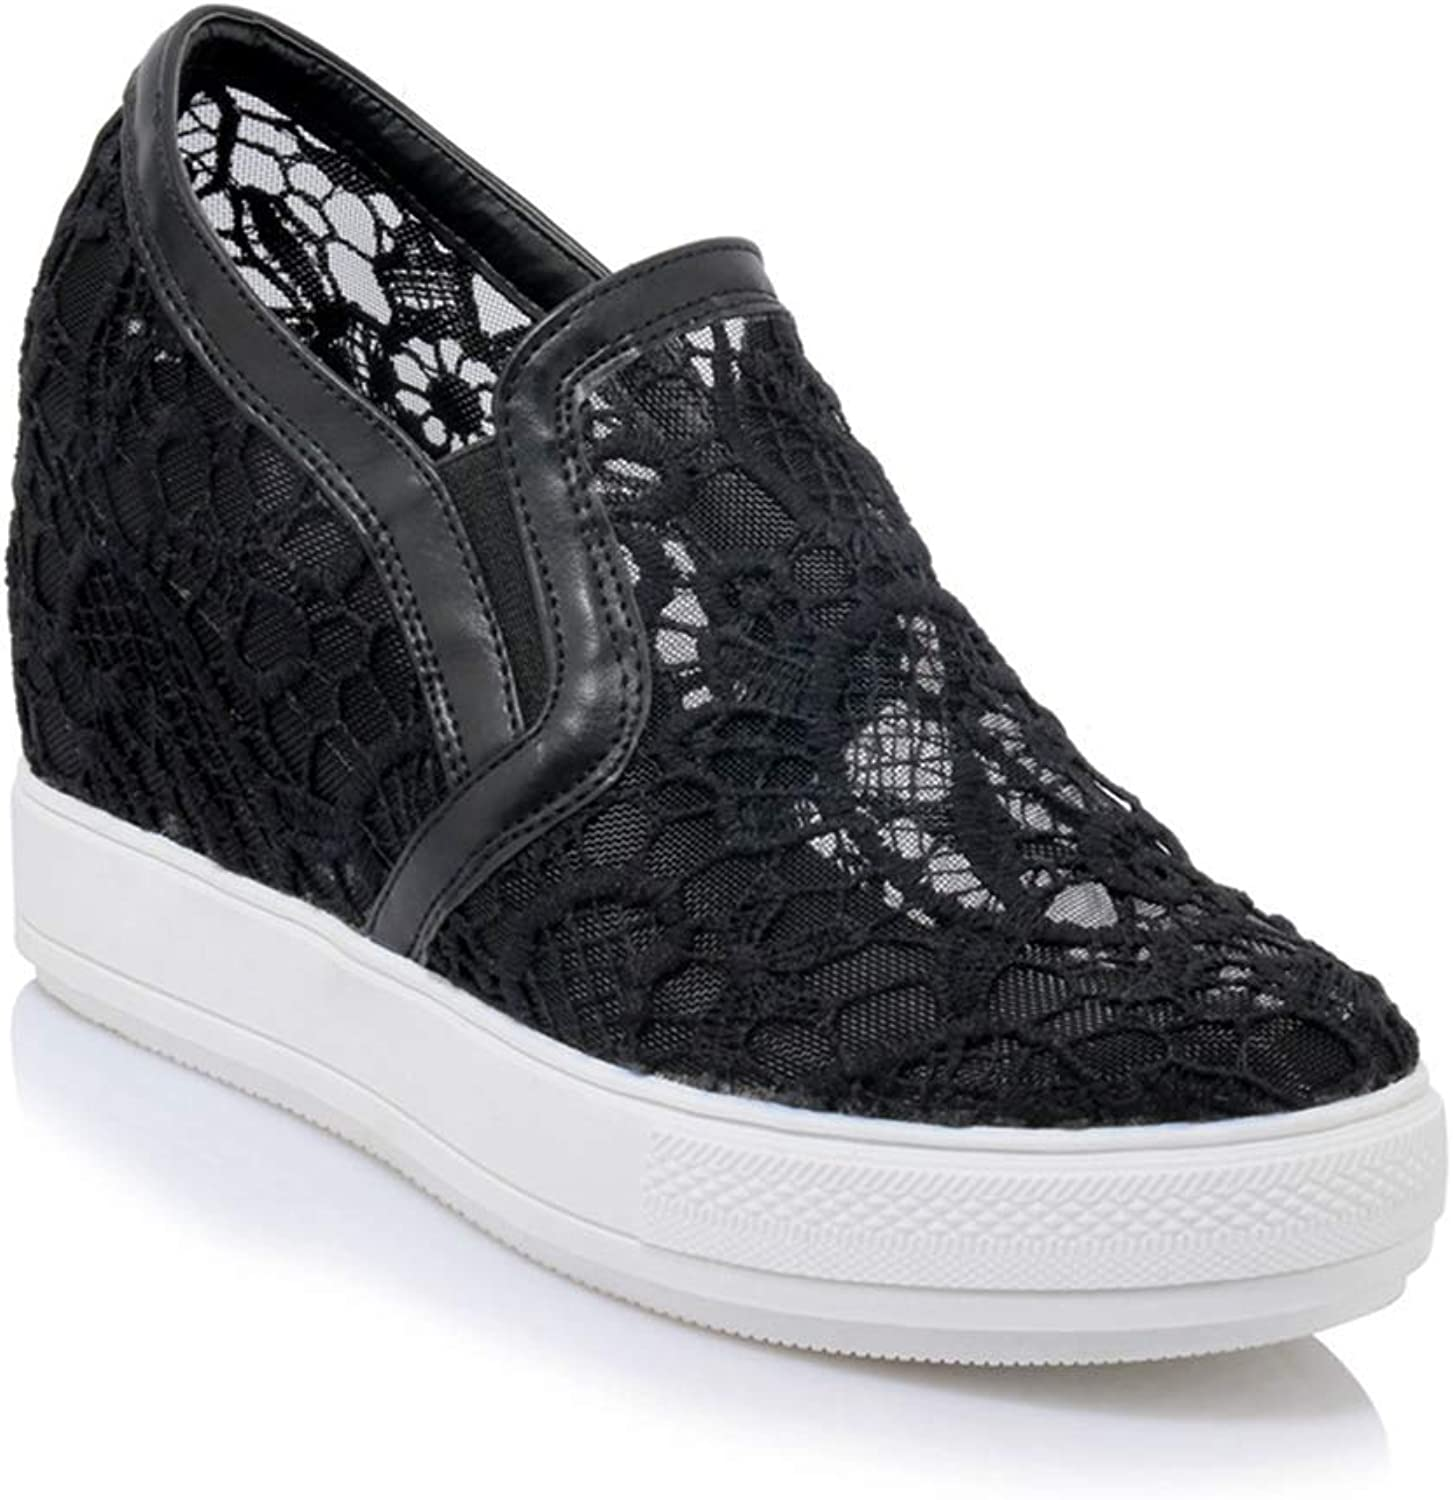 Elsa Wilcox Women Sneakers Platform Increased Height Slip On Casual Sports shoes Fashion Laces Low Top Wedge